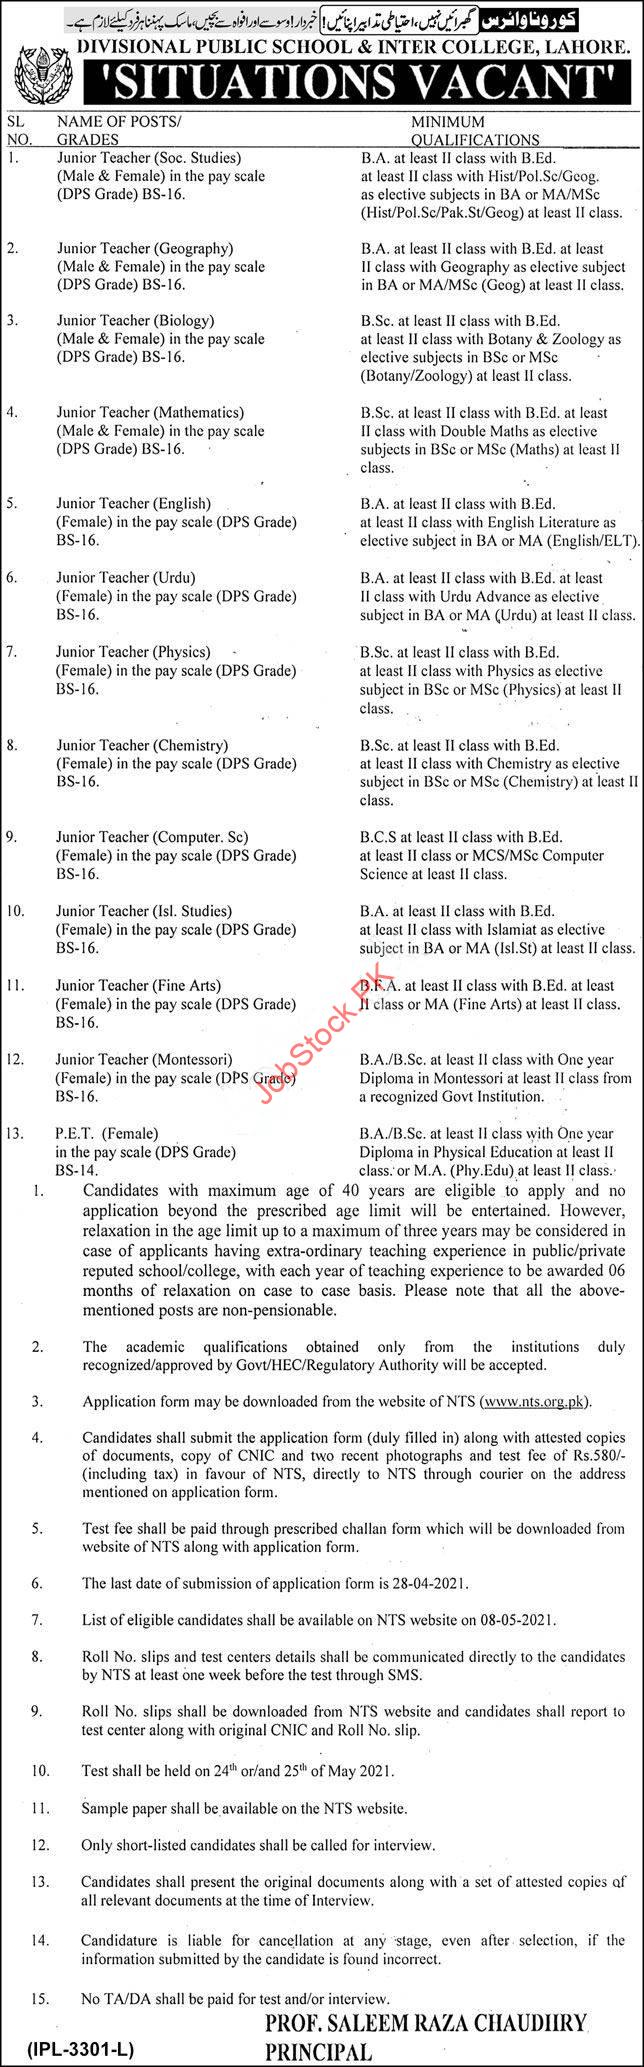 Government Teaching Jobs Advertisement In Lahore 2021